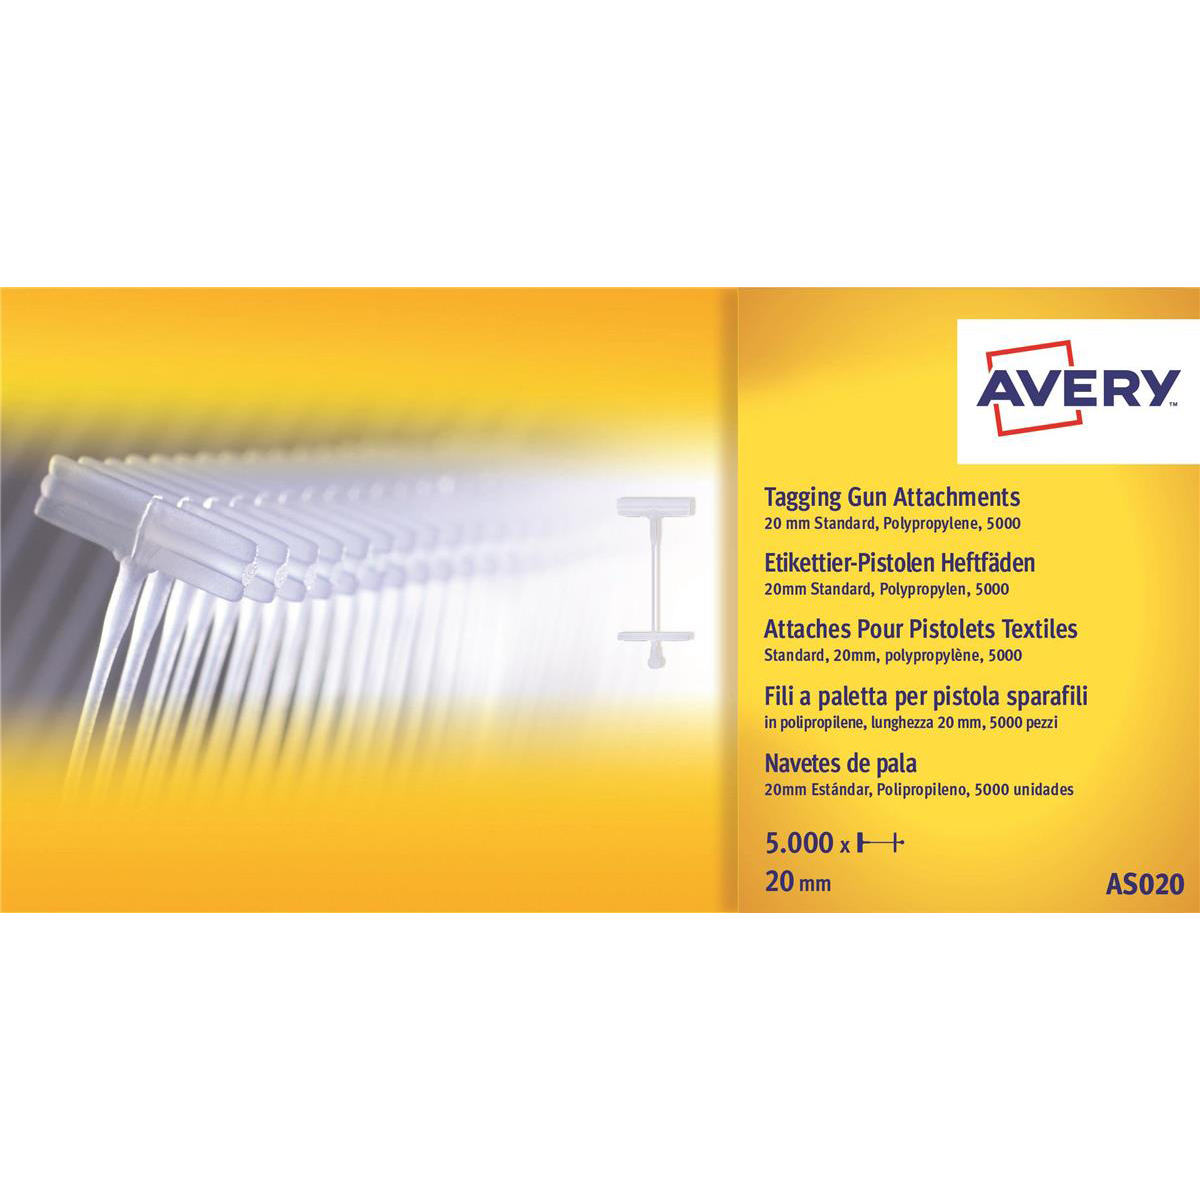 Accessories Avery Tagging Gun Attachments Polypropylene with Paddles 20mm Ref AS020 Pack 5000